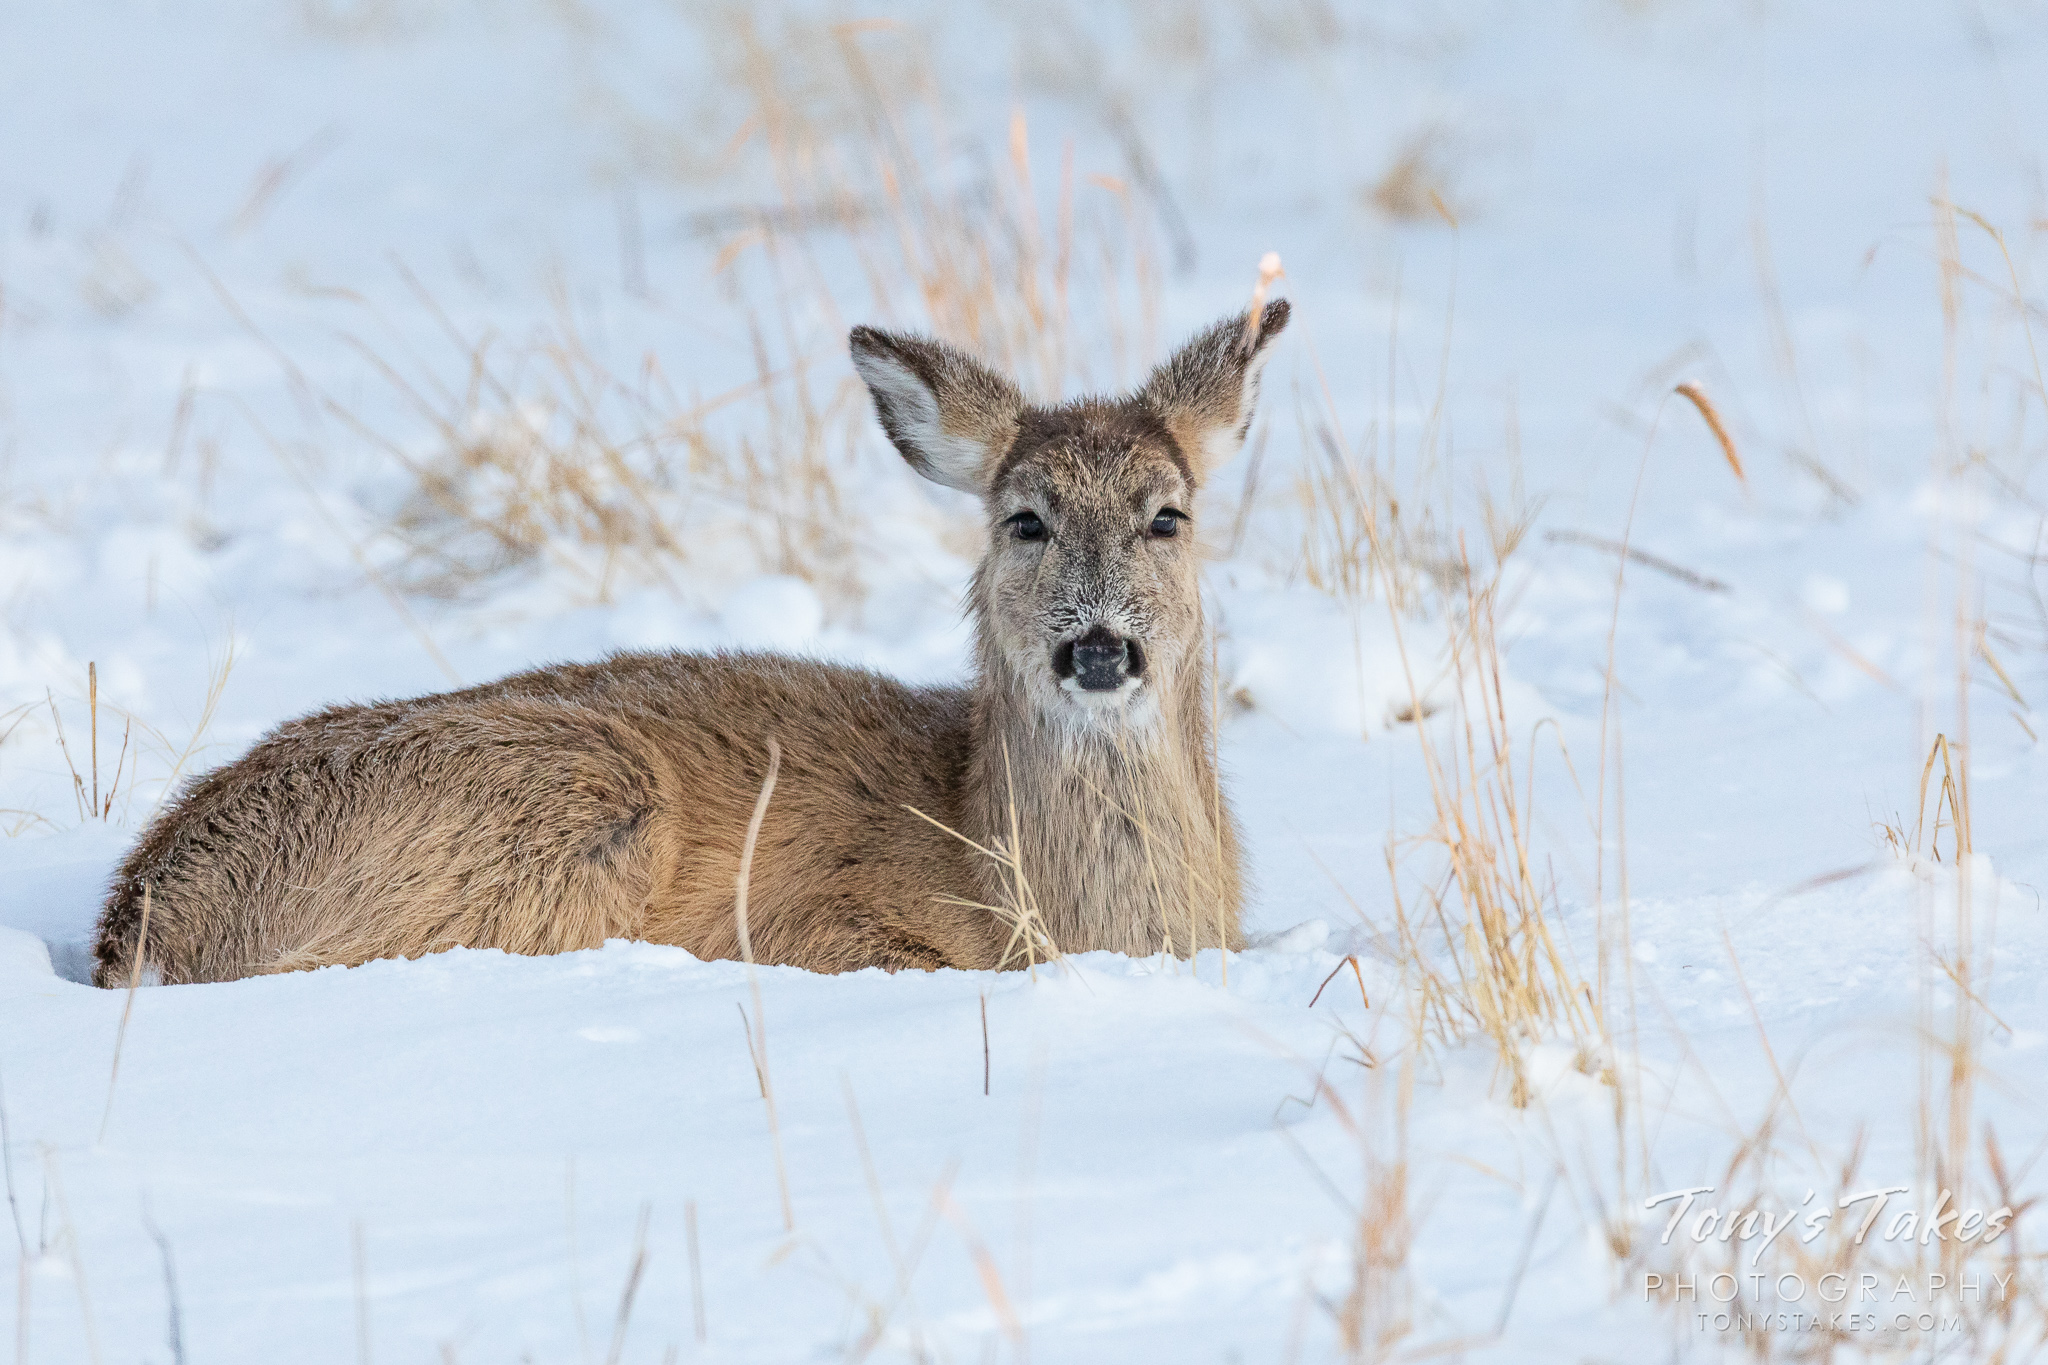 White-tailed deer doe beds down in the fresh snow